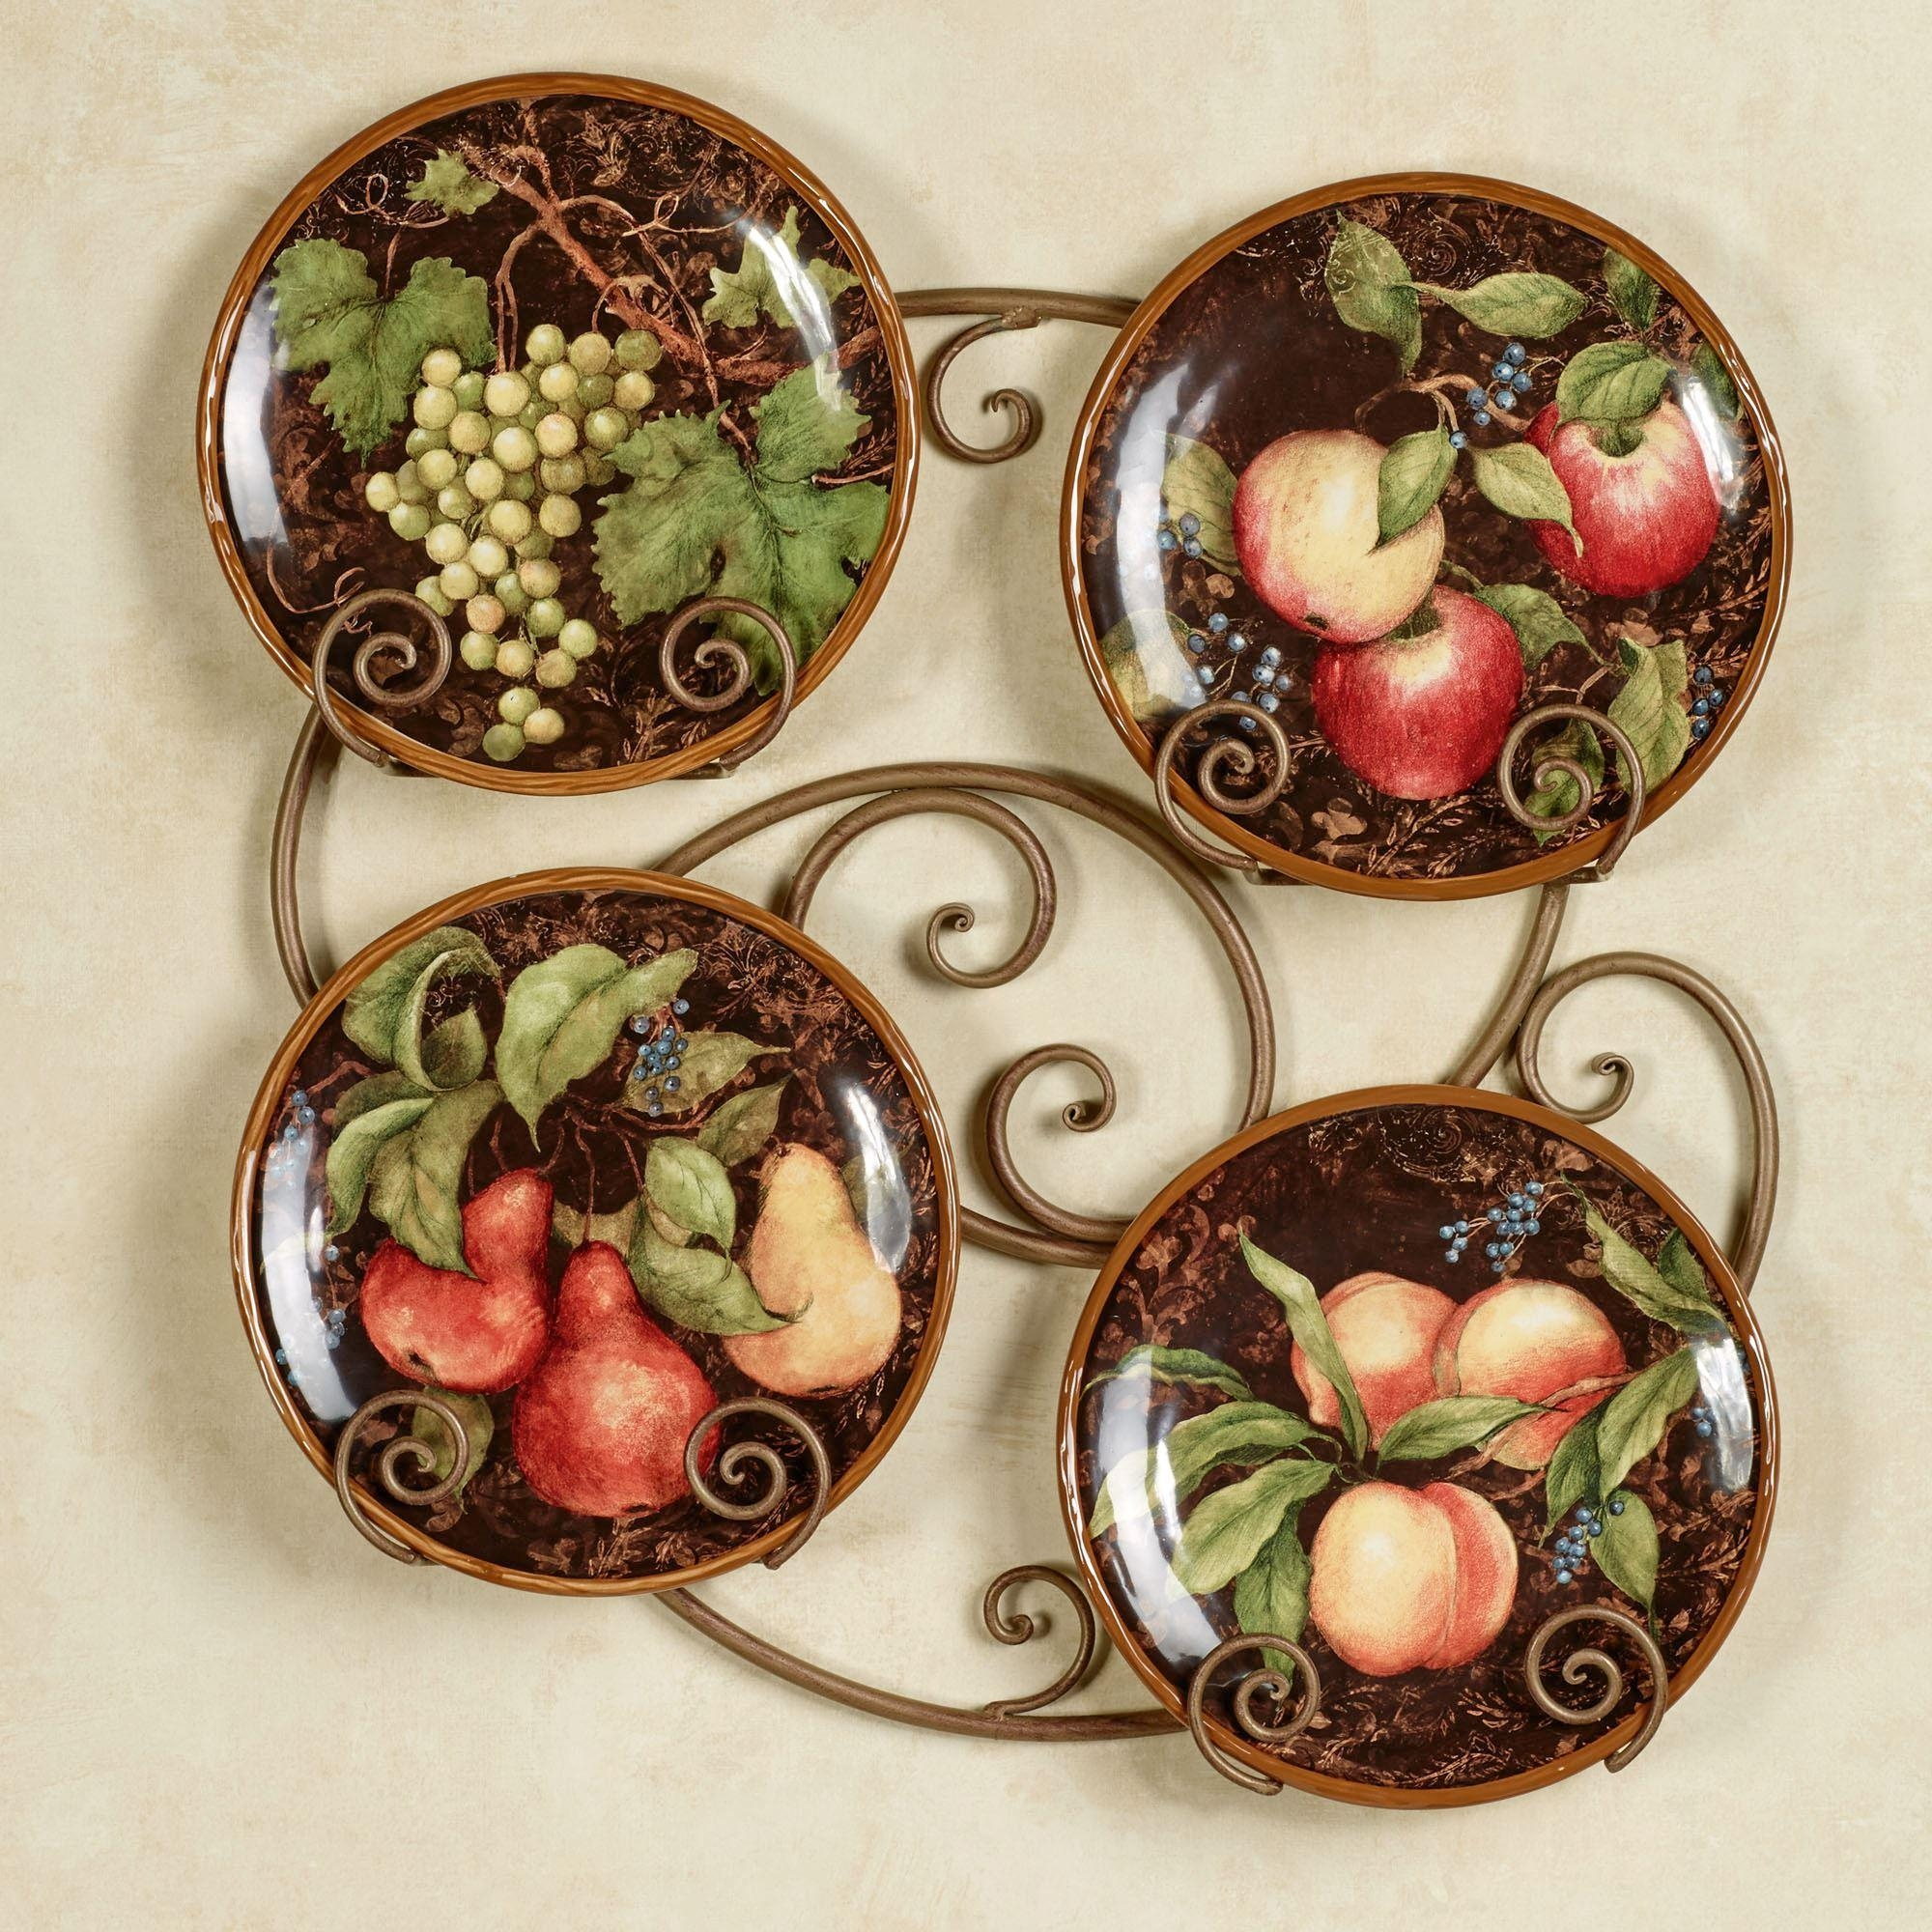 Tuscan And Italian Home Decor   Touch Of Class Within Italian Ceramic Wall Clock Decors (Image 15 of 20)